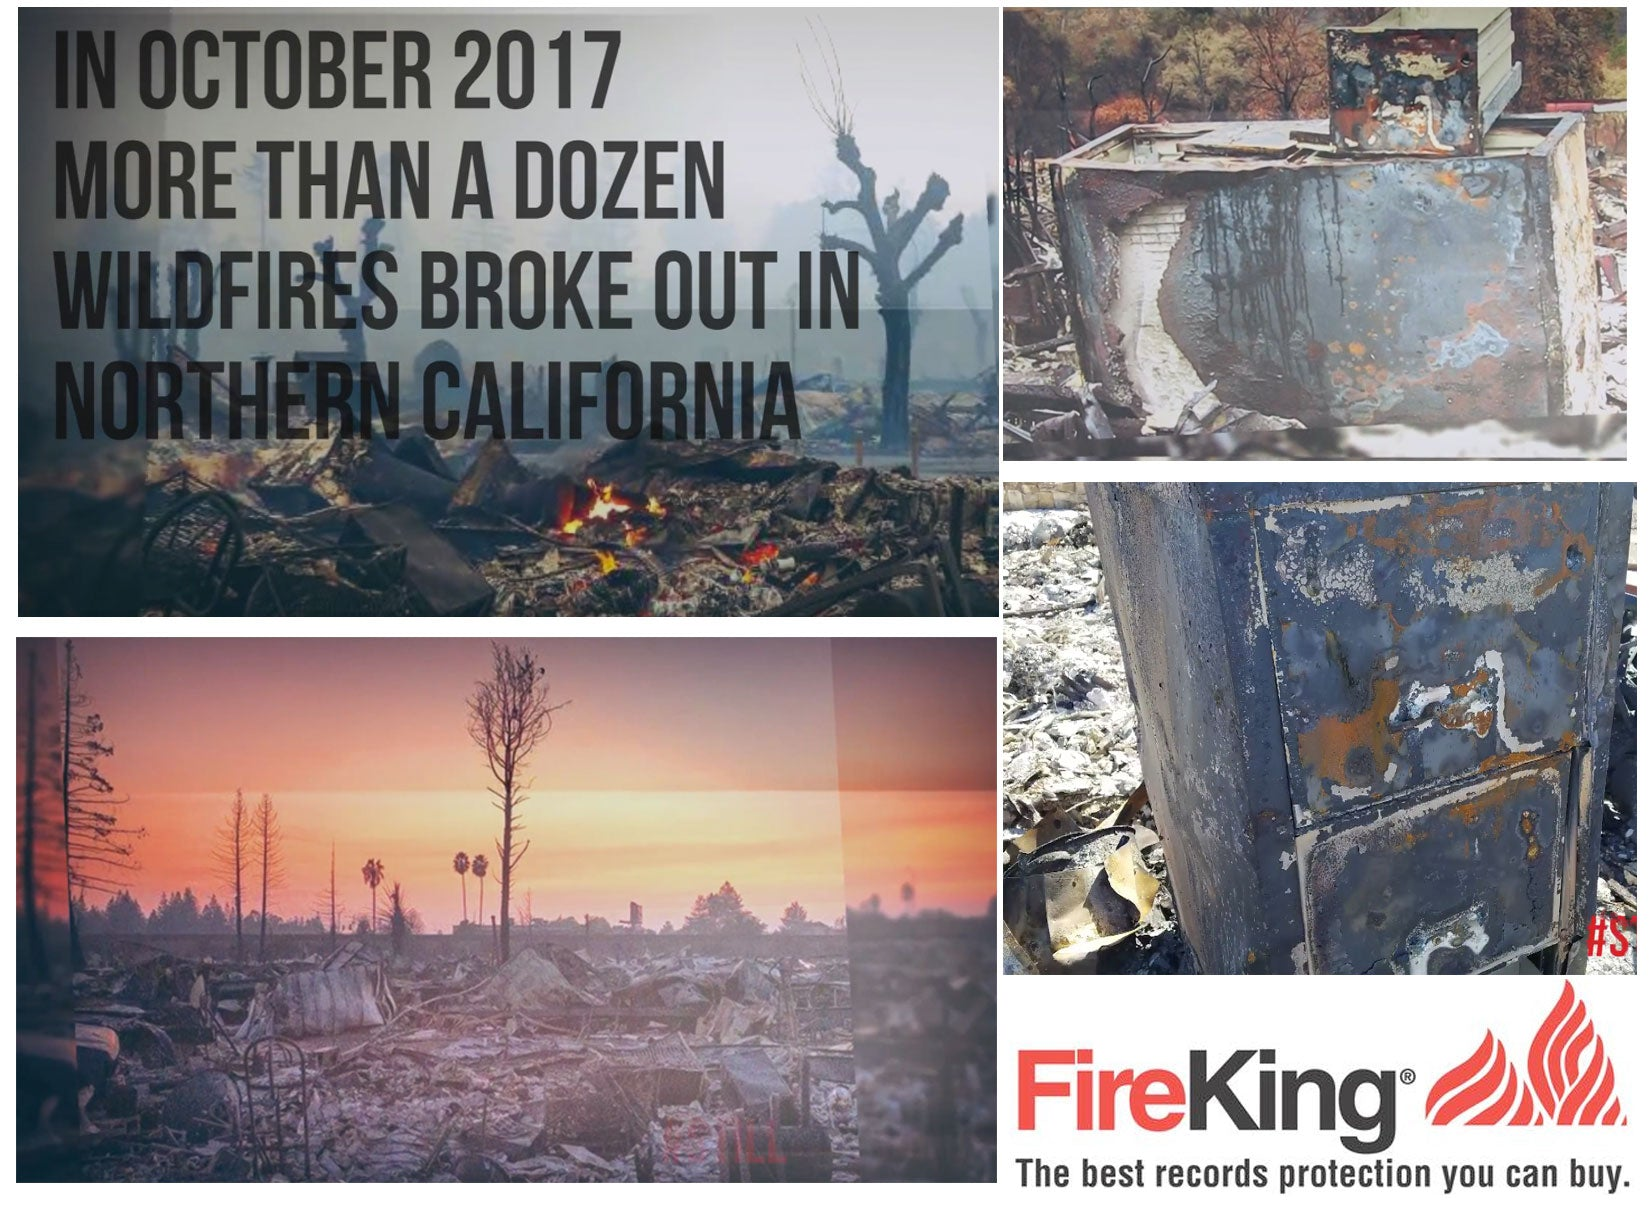 California Wildfires FireKing Safes